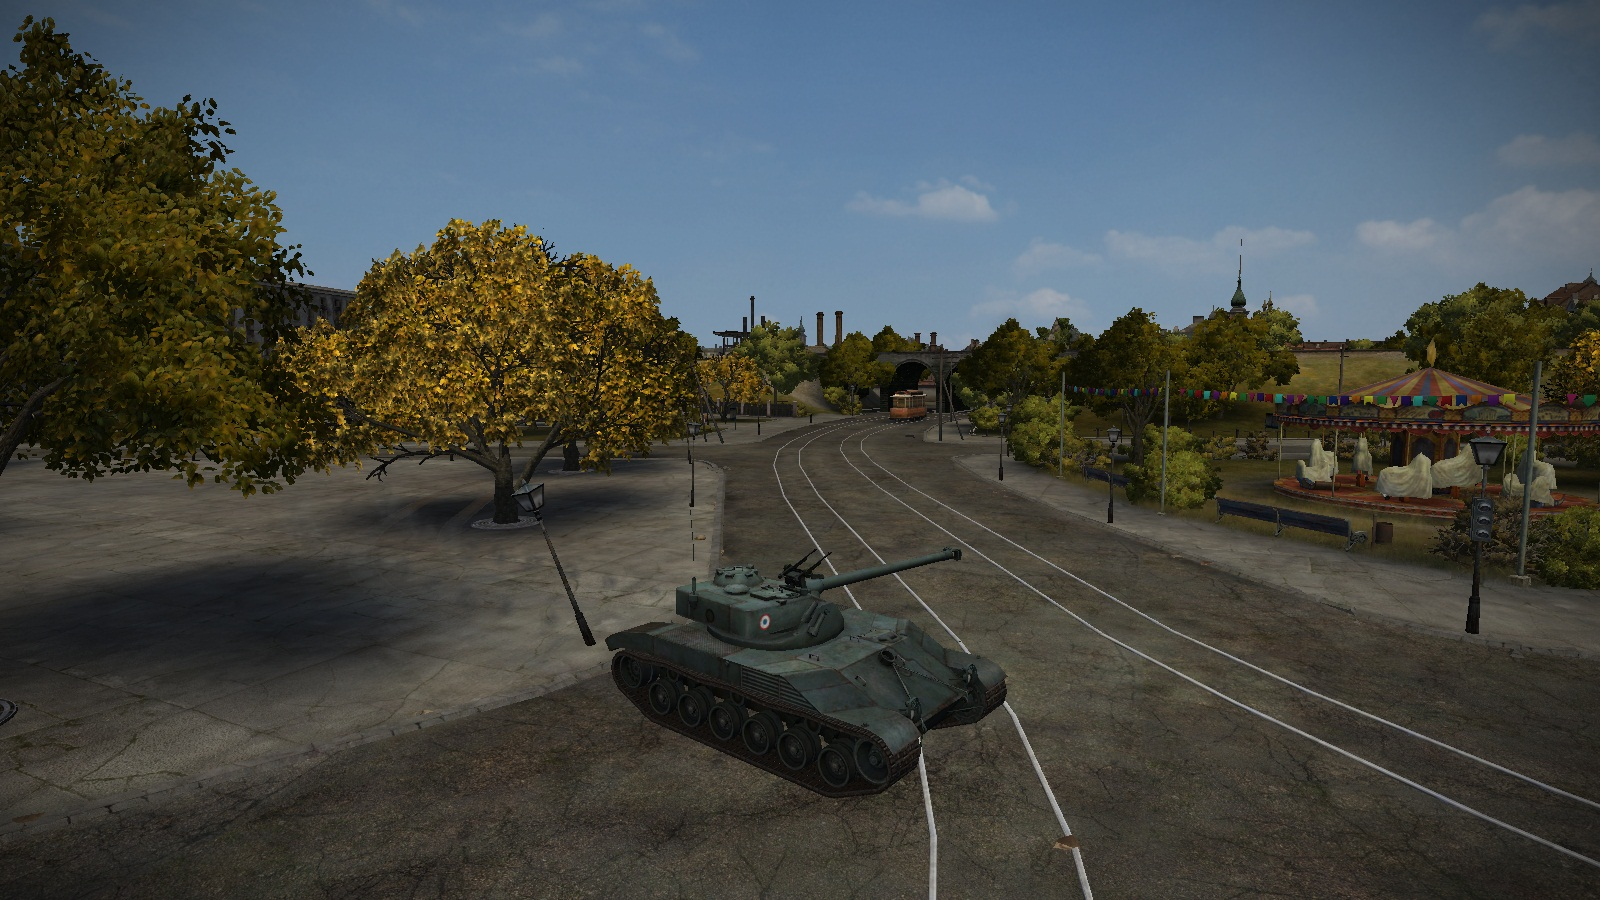 http://worldoftanks.com/dcont/fb/imagesforarticles/bat_chatillon_25t.jpg